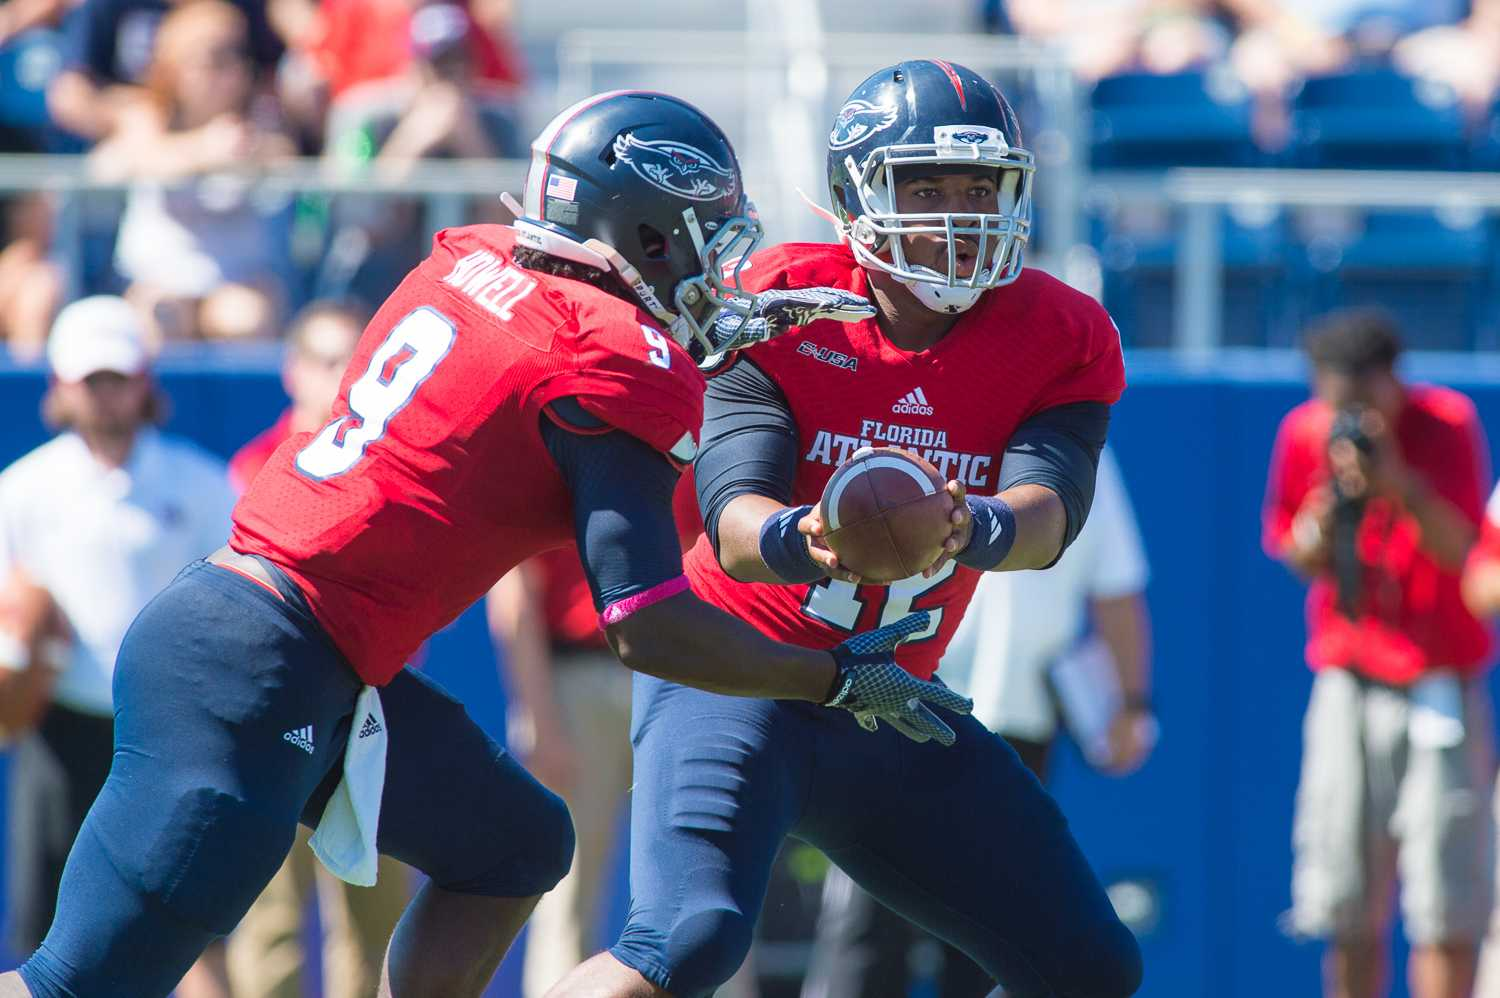 Redshirt senior quarterback Jaquez Johnson and sophomore running back Greg Howell will lead the Owls offense as they face the Miami Hurricanes Friday night. Max Jackson| Staff Photographer